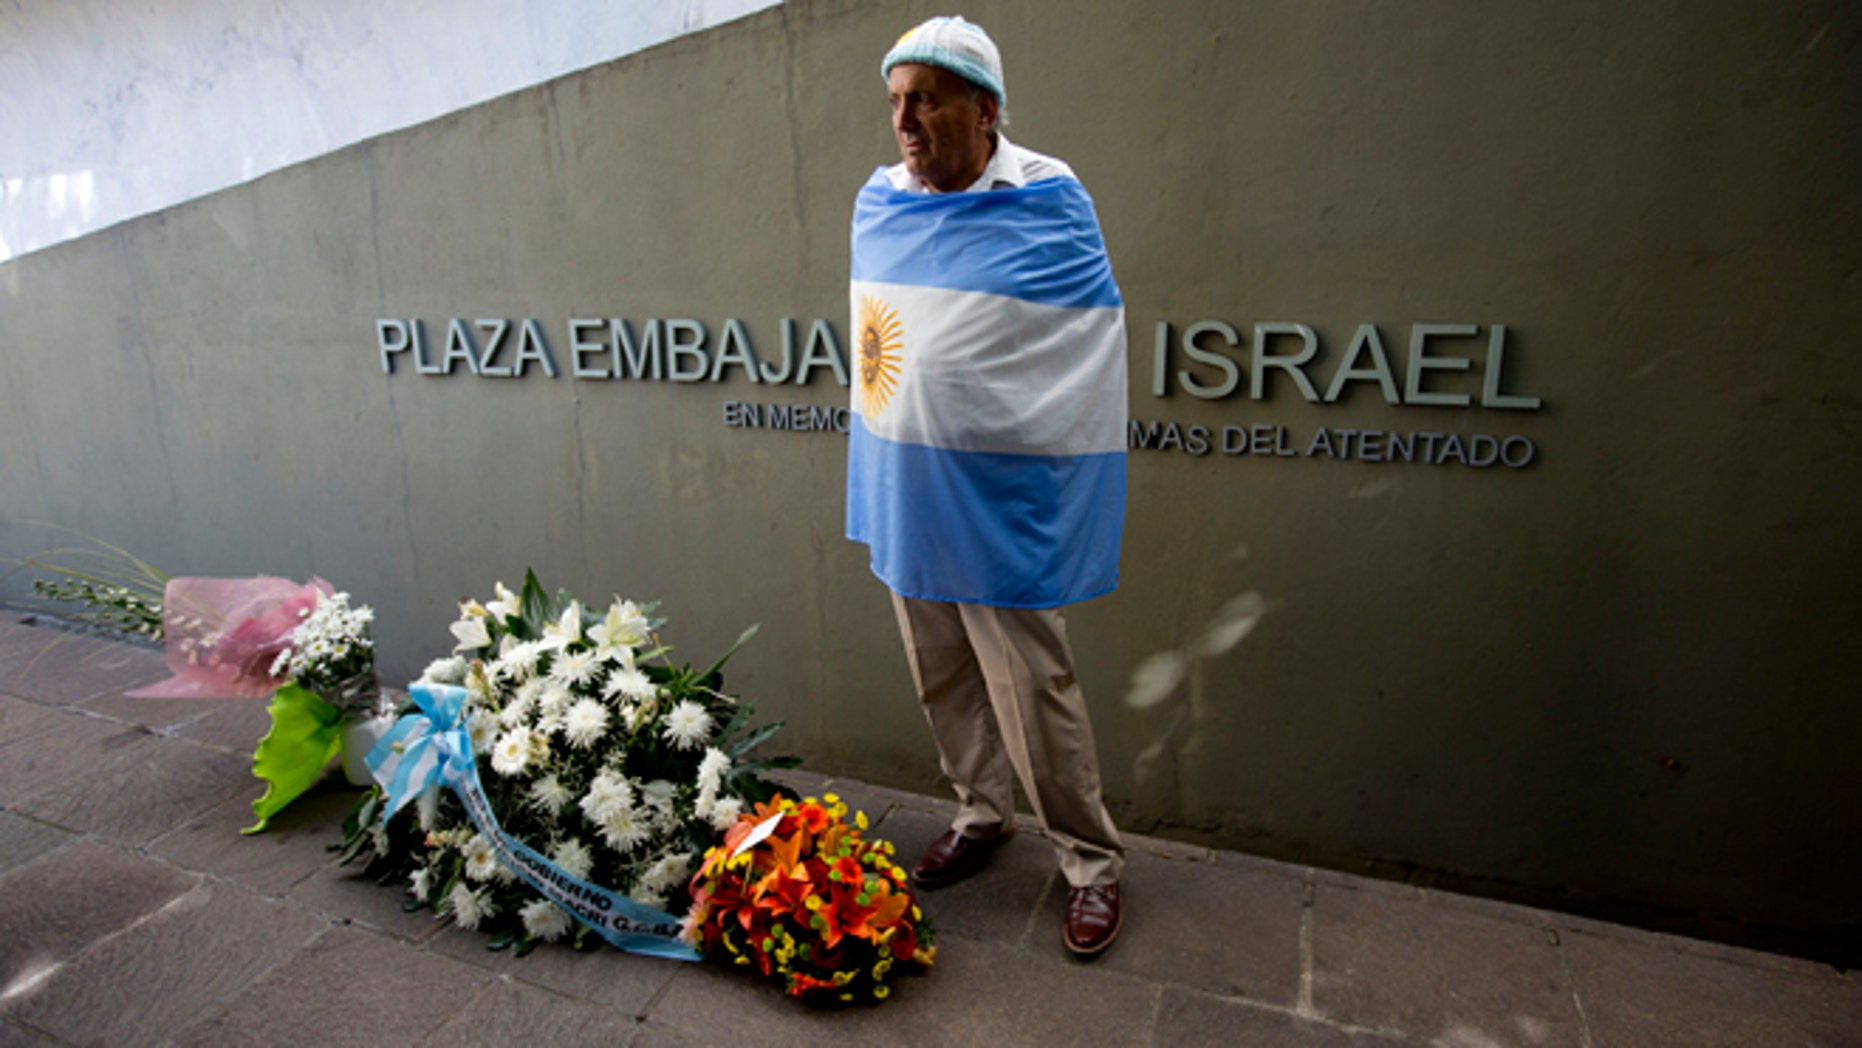 Juan Pulvirenti stands next to several floral arrangements placed on the site where the Israeli Embassy used to be during an act to commemorate the 23rd anniversary of the bomb attack that destroyed the building killing 22 people, in Buenos Aires, Argentina, Tuesday, March 17, 2015. (AP Photo/Natacha Pisarenko)